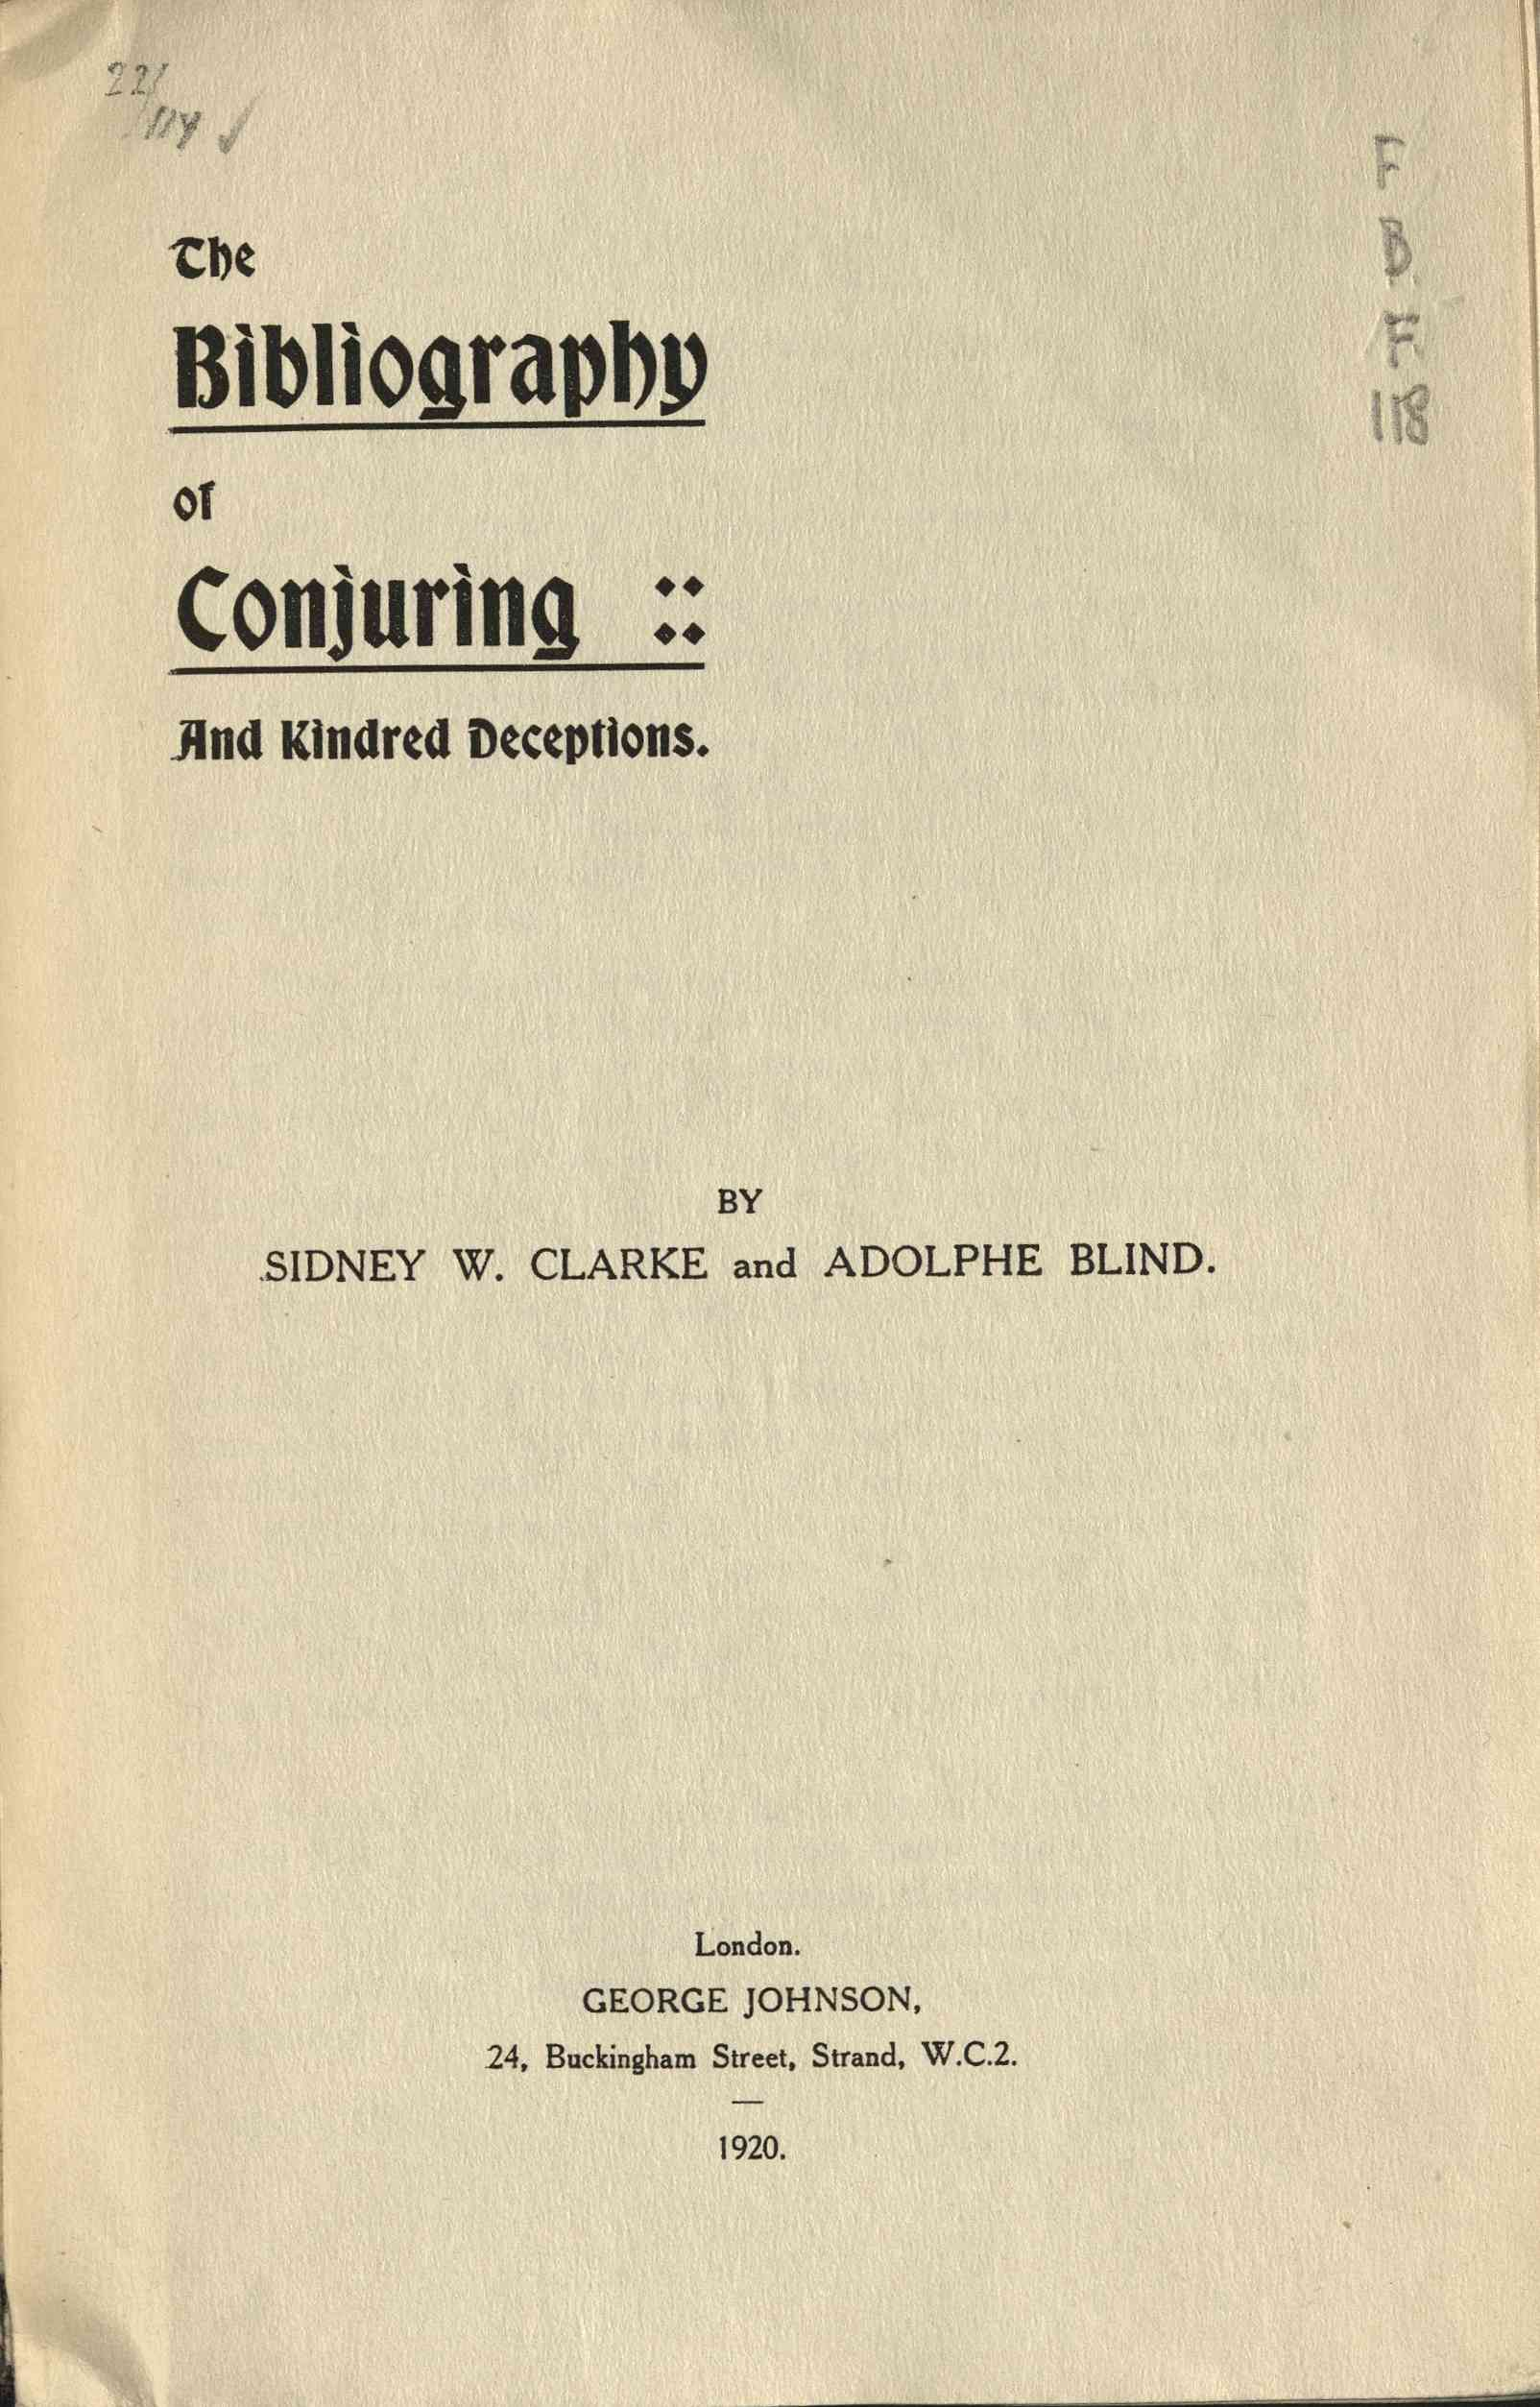 Bibliography of conjuring and kindred deceptions, The